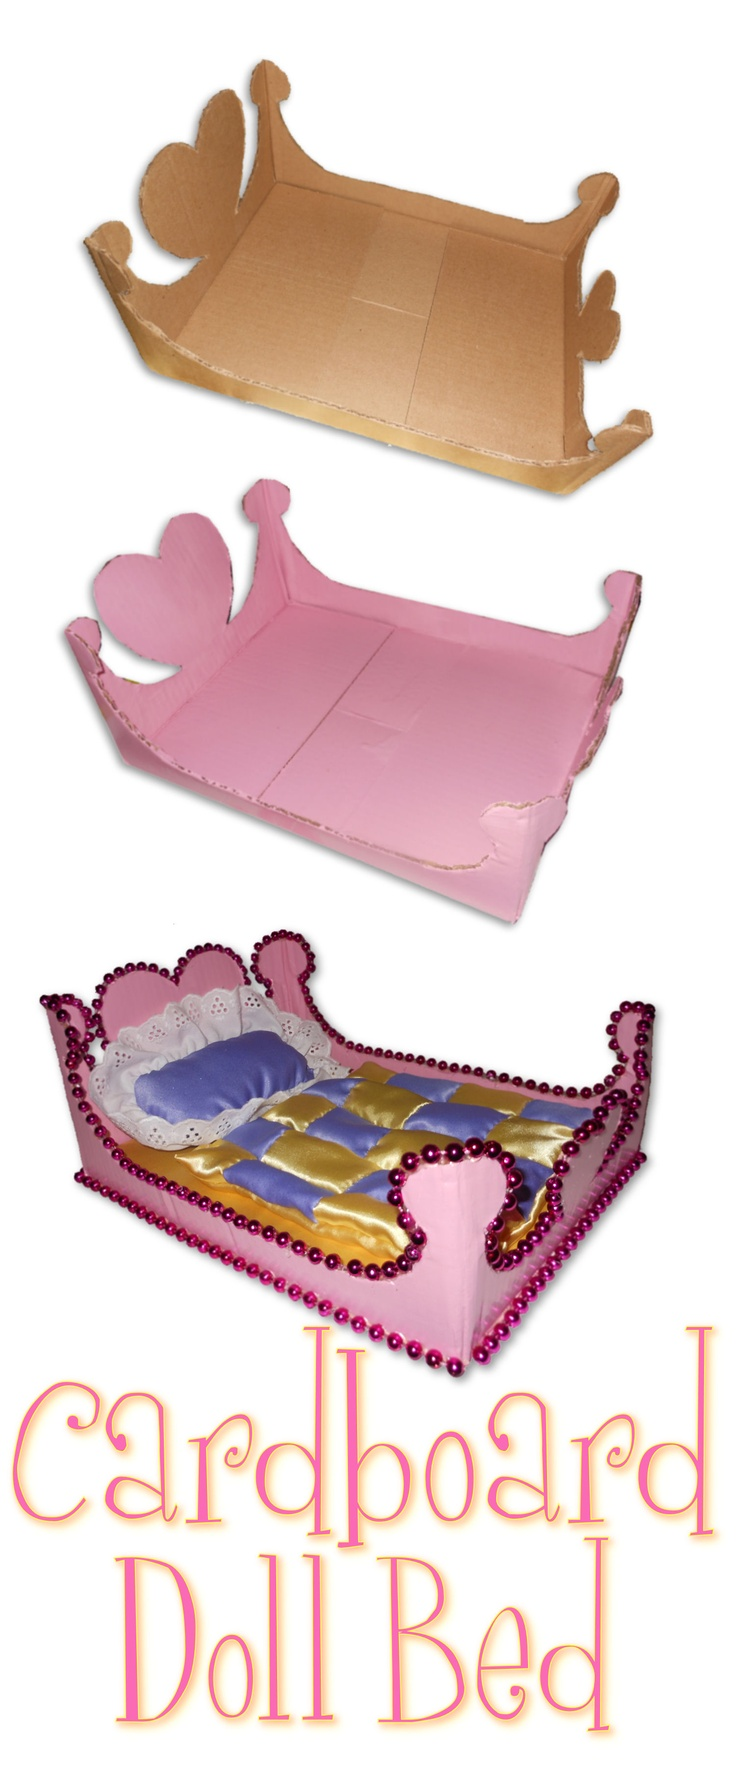 Cardboard Doll Bed- Made this for Aiyanna                                                                                                                                                                                 Mehr